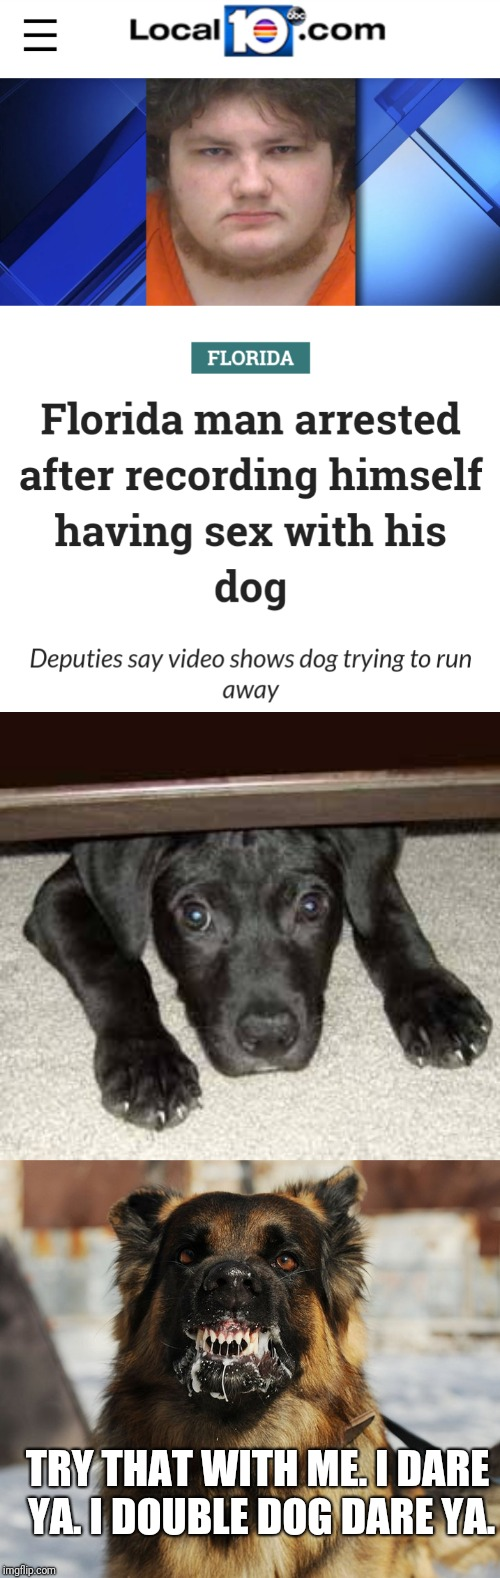 """Dog dare"" Florida Man Week (March 3-10, a Claybourne and Triumph_9 event) 